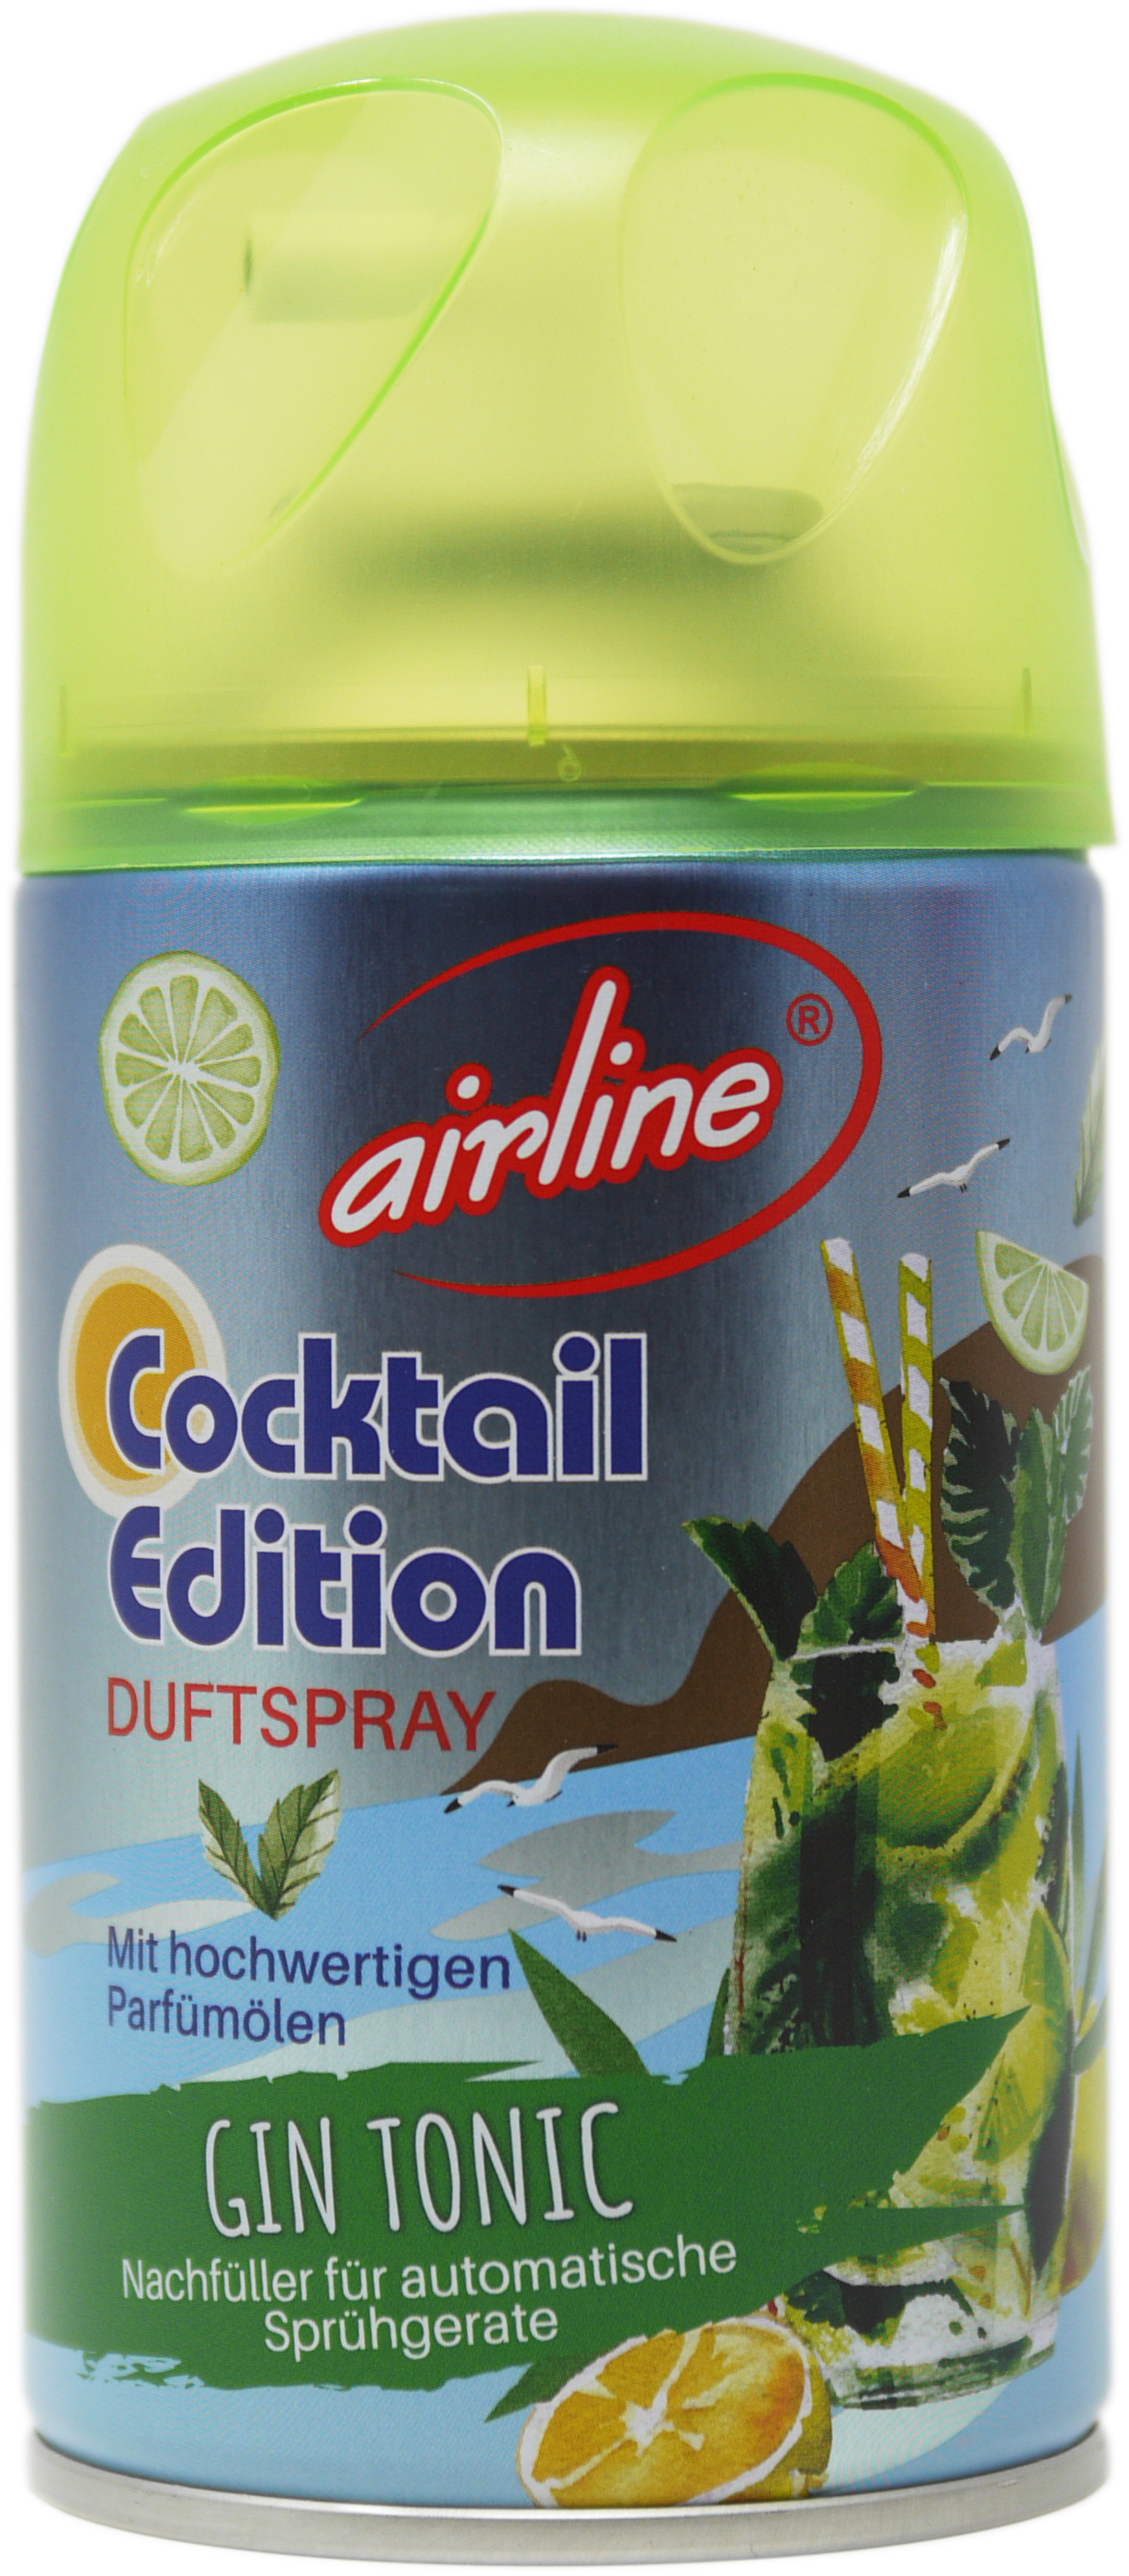 00562 - airline Cocktail Edition Gin Tonic Nachf